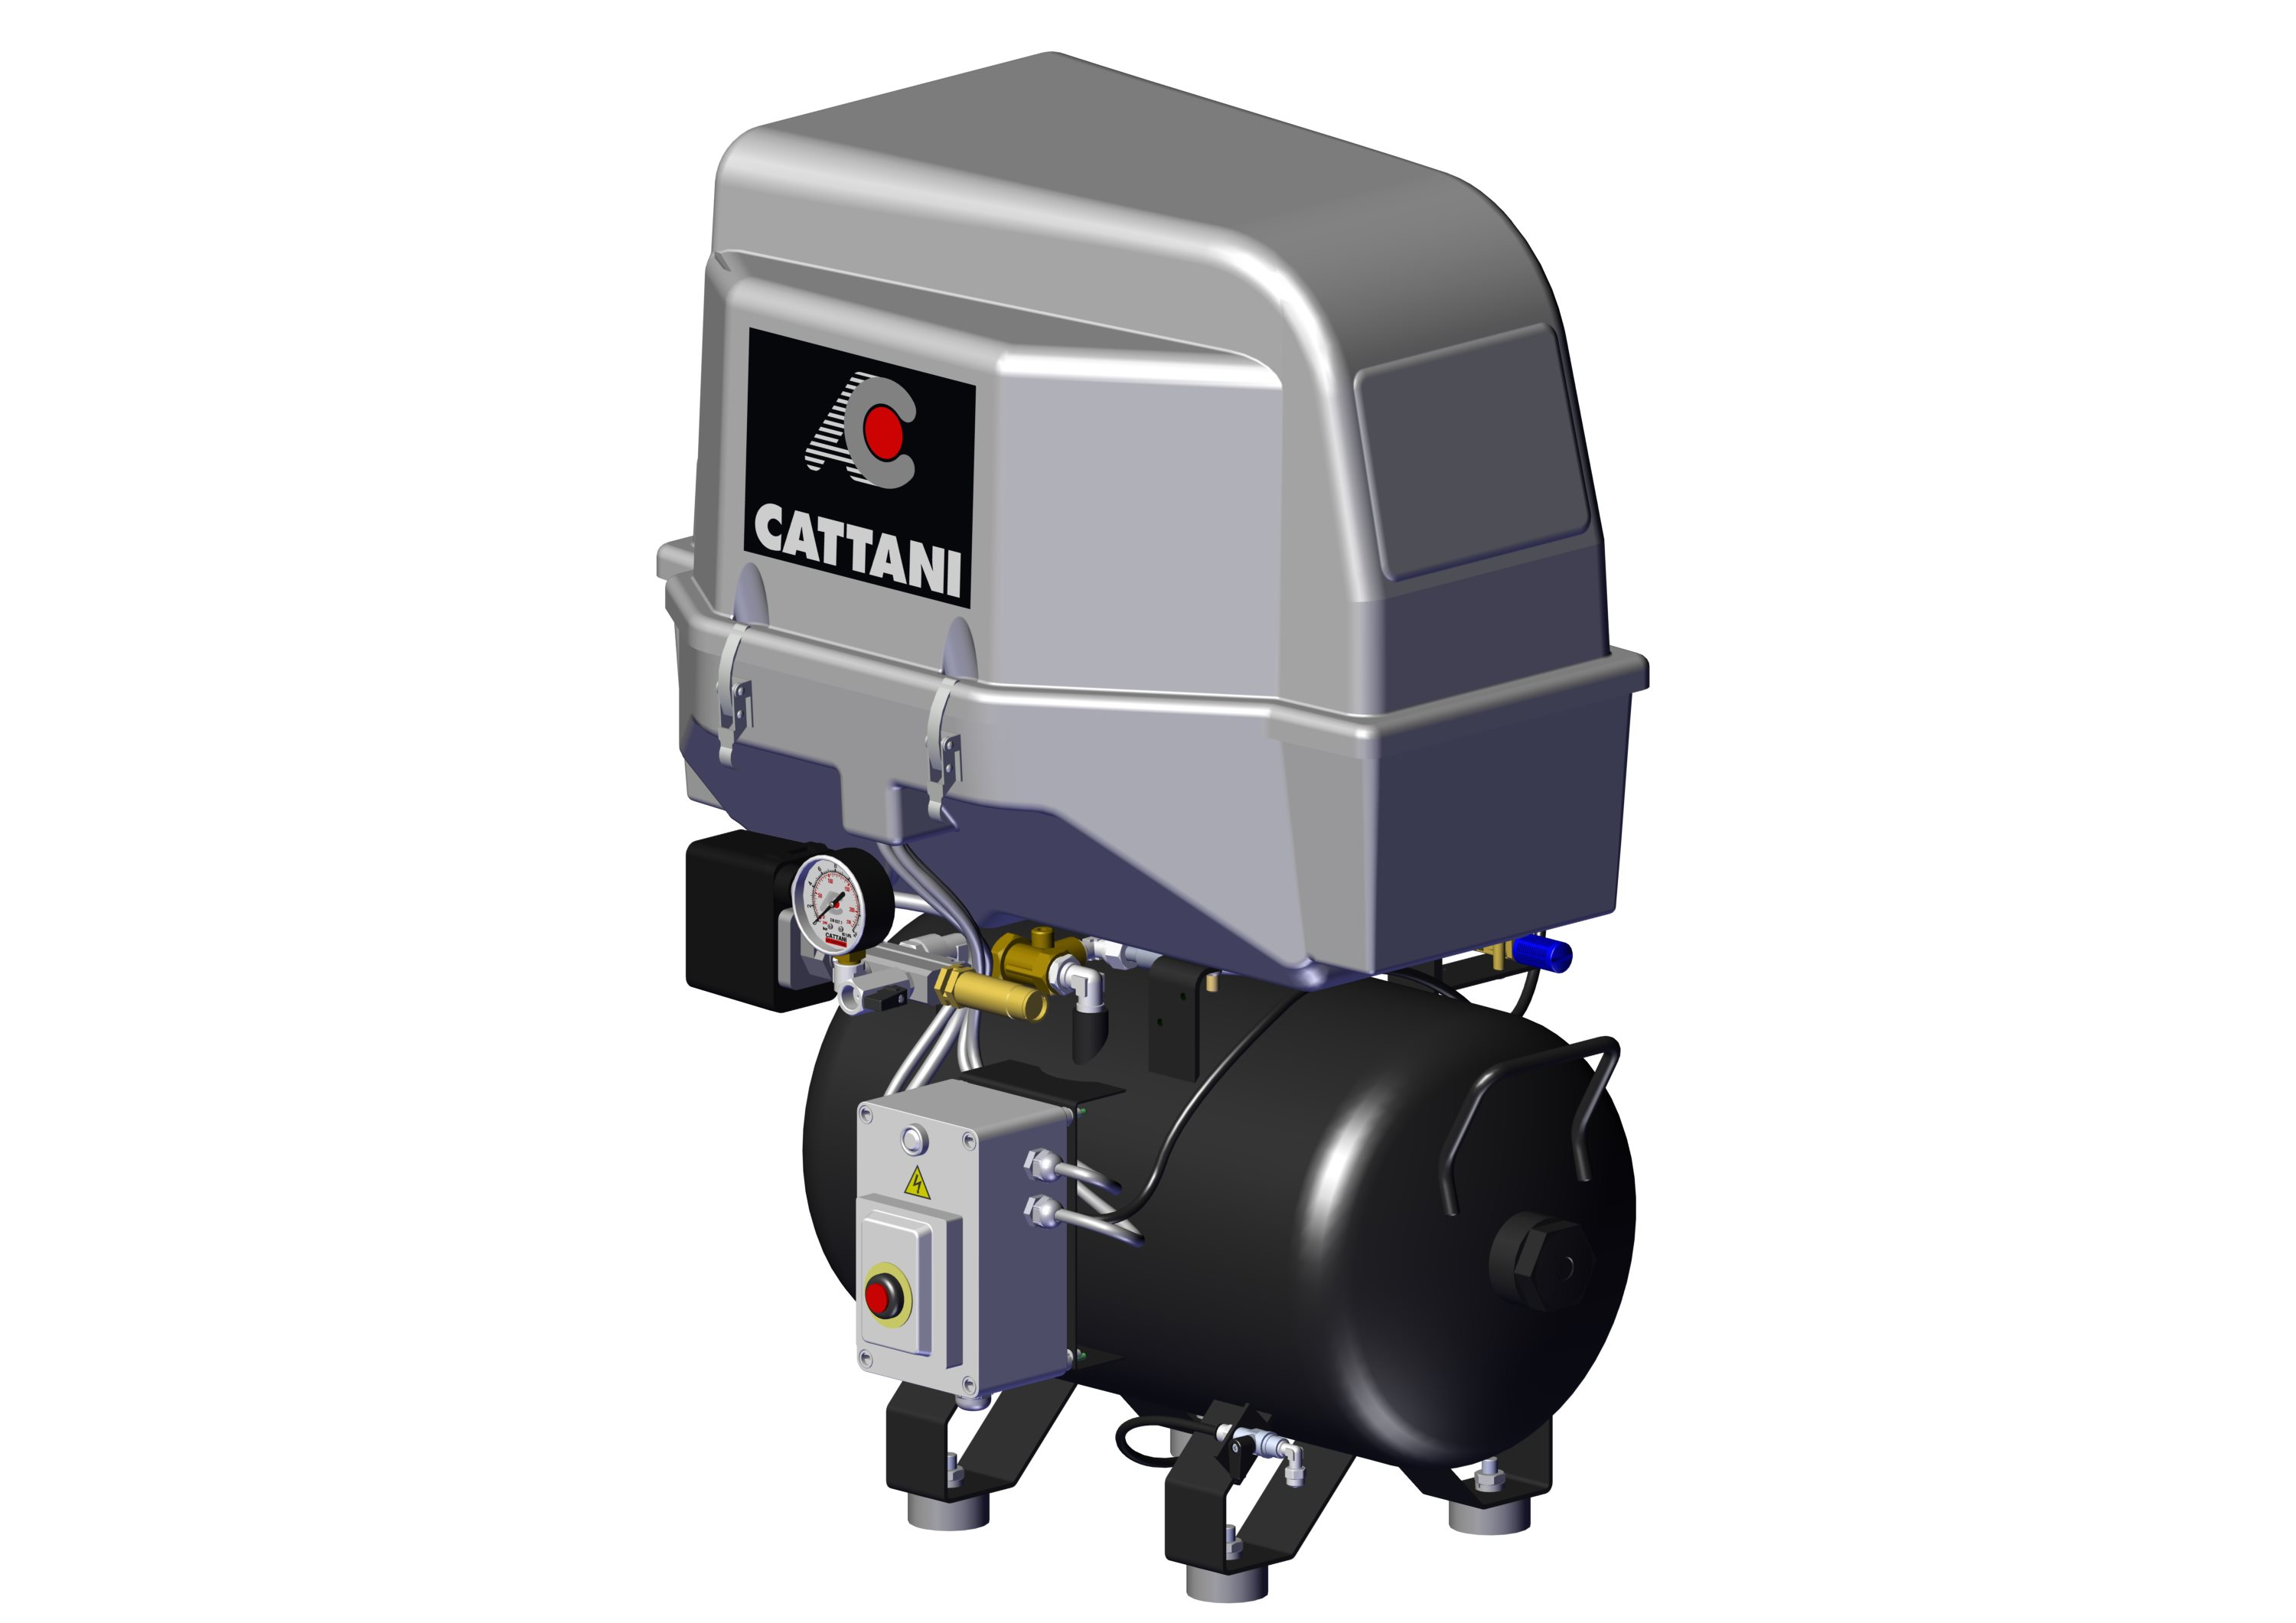 CATTANI Air Care horizontal oil-less compressors Archives